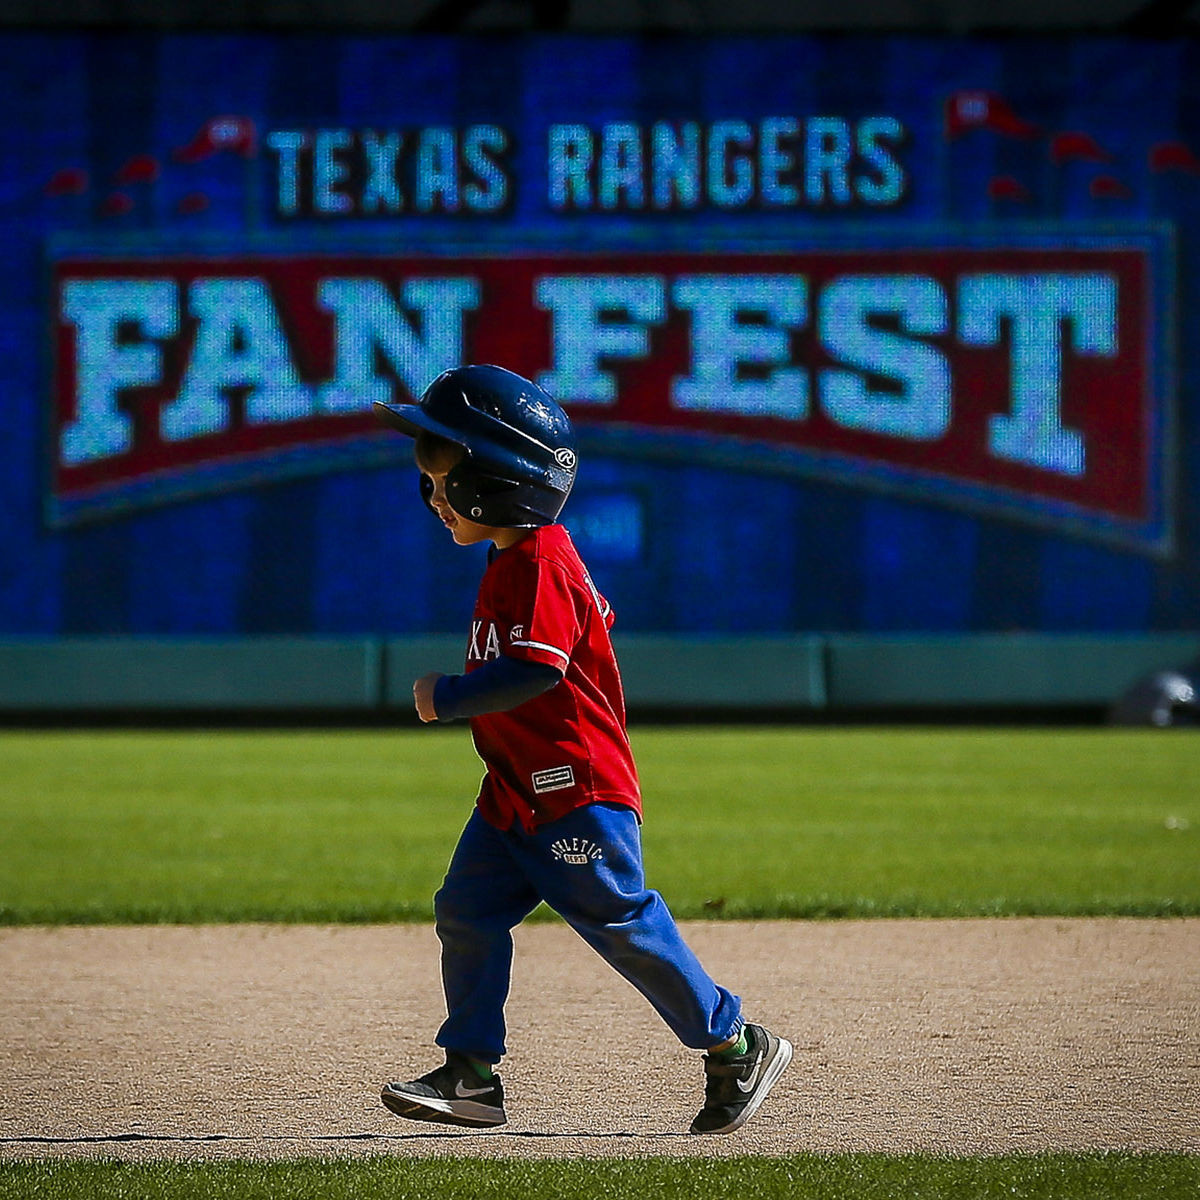 Texas Rangers Fan Fest